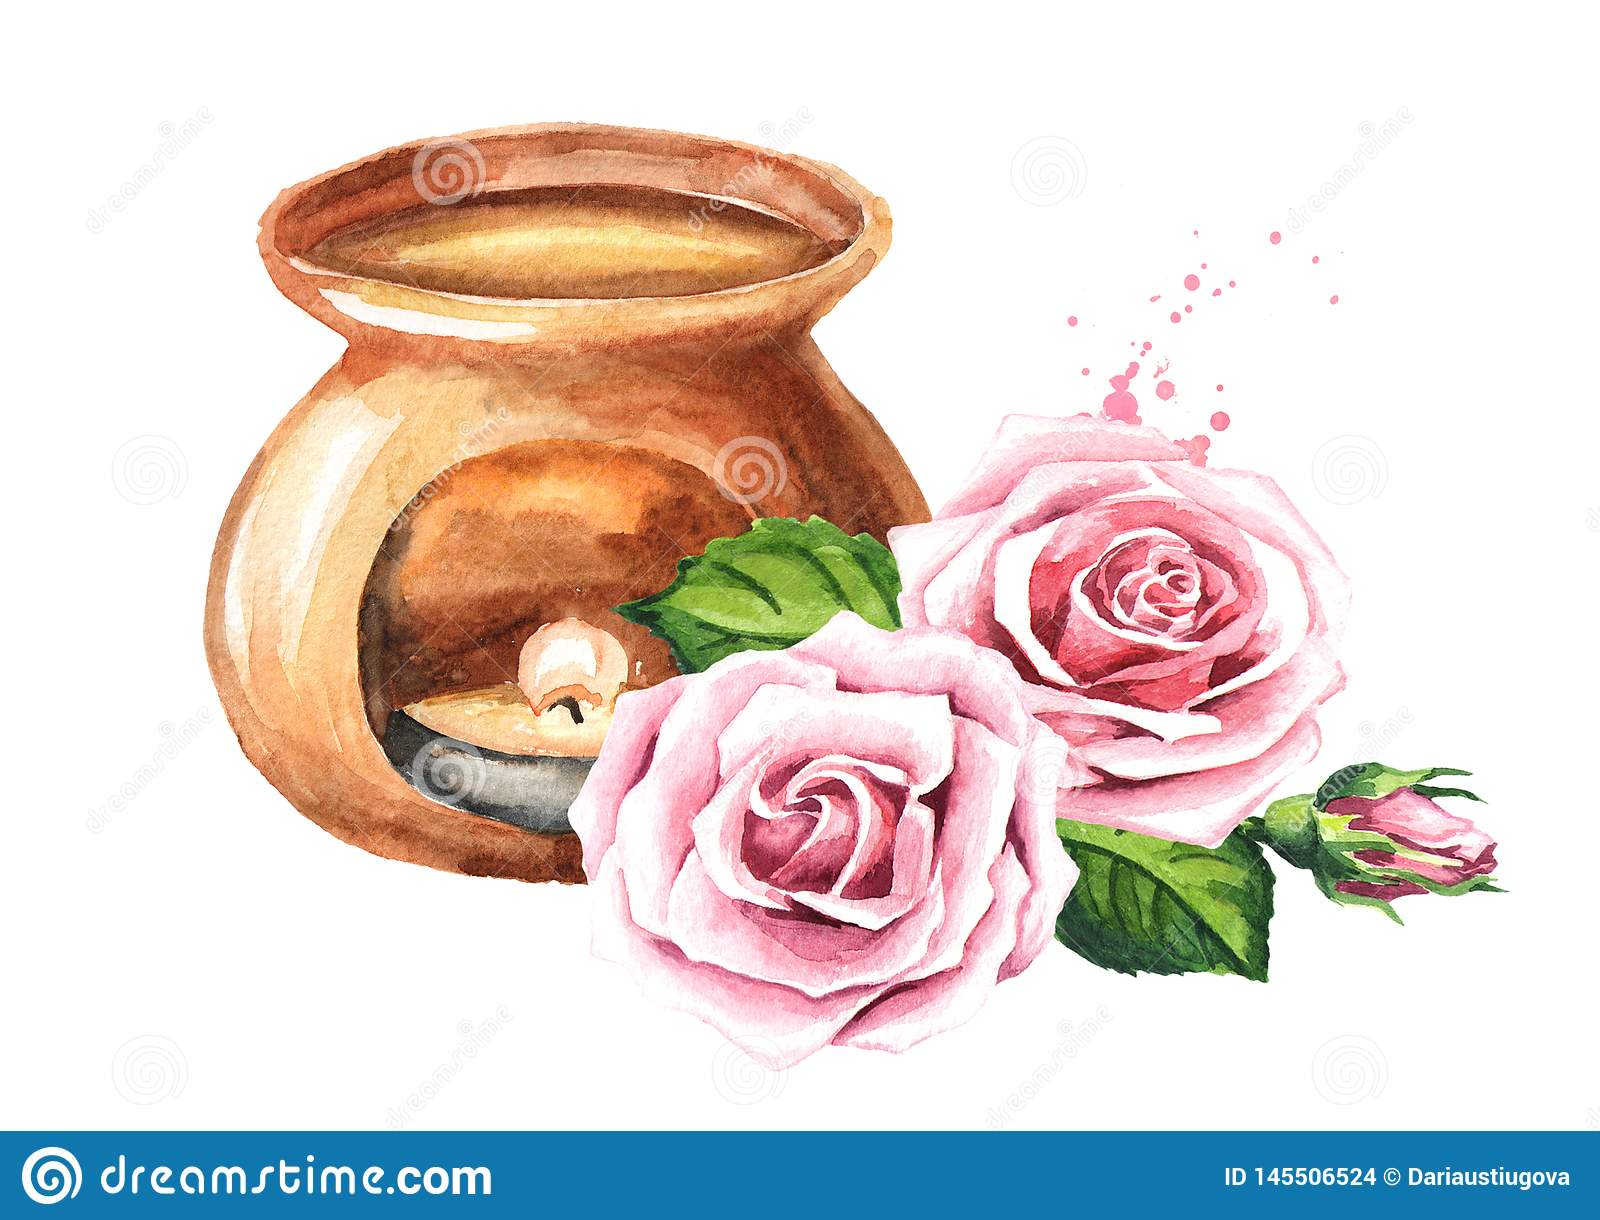 Rose flower essential oil and aroma lamp. Watercolor hand drawn illustration isolated on white background